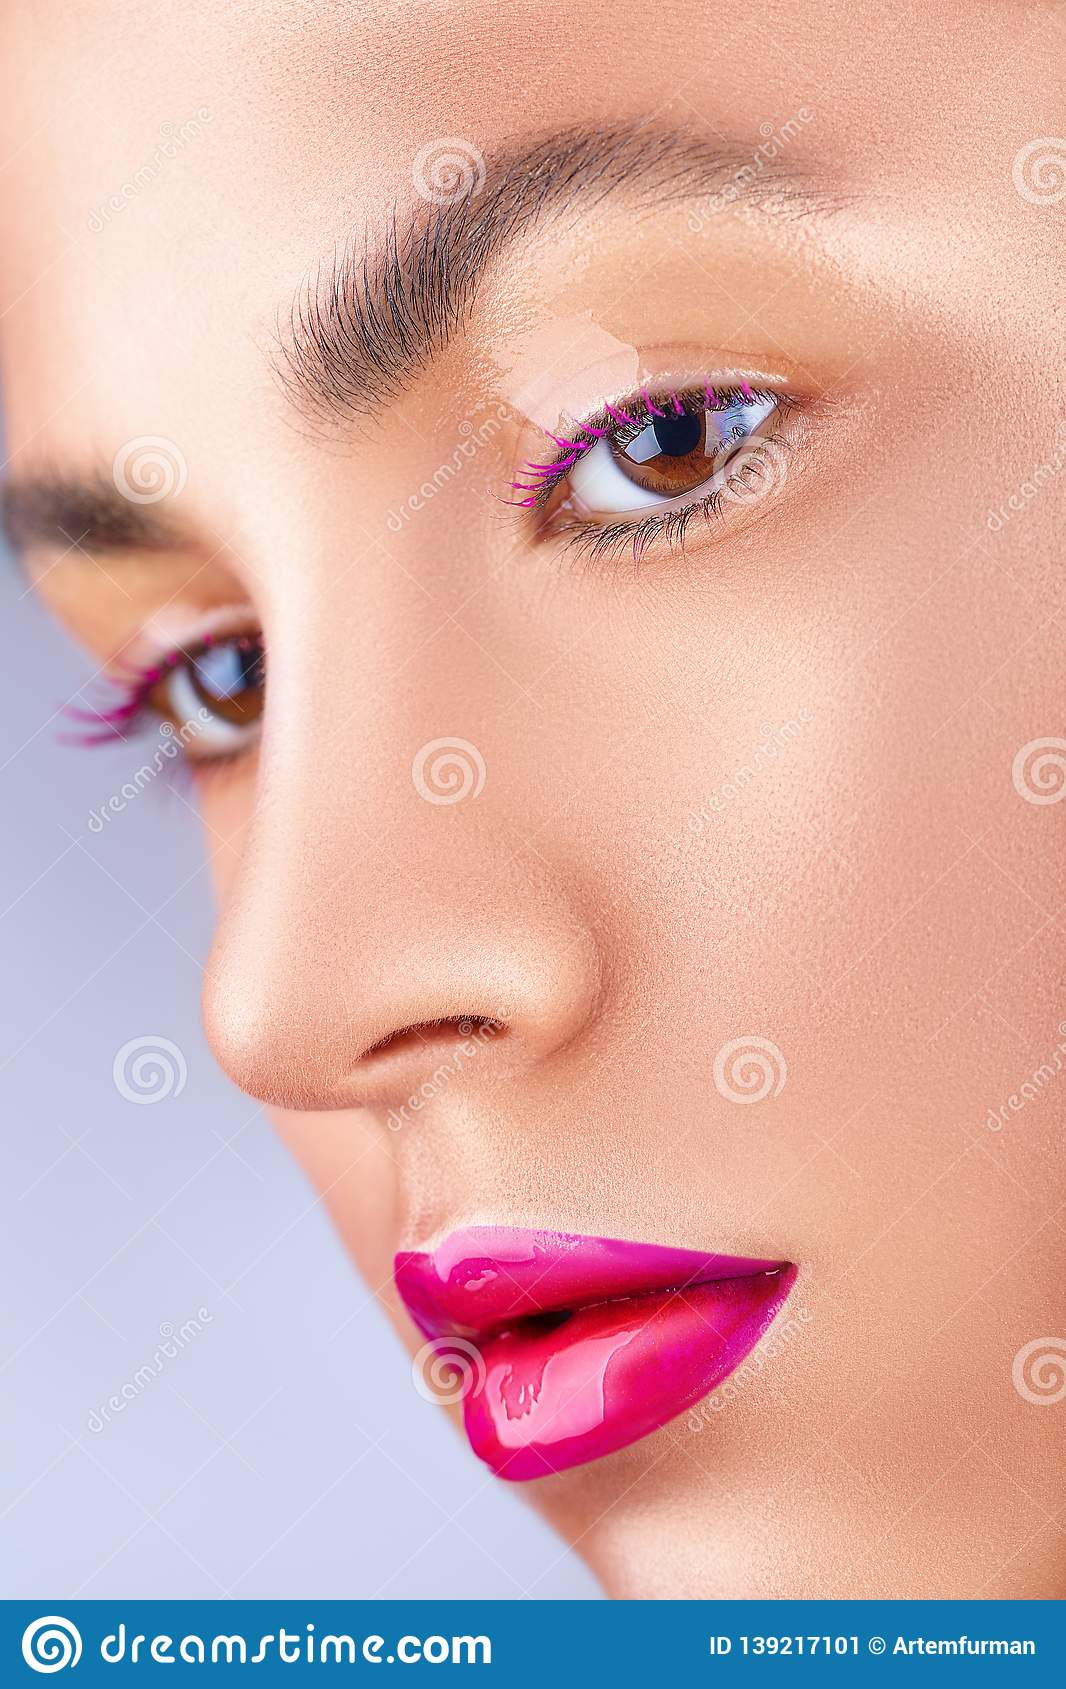 Bright pink lips stock image  Image of lady, care, natural